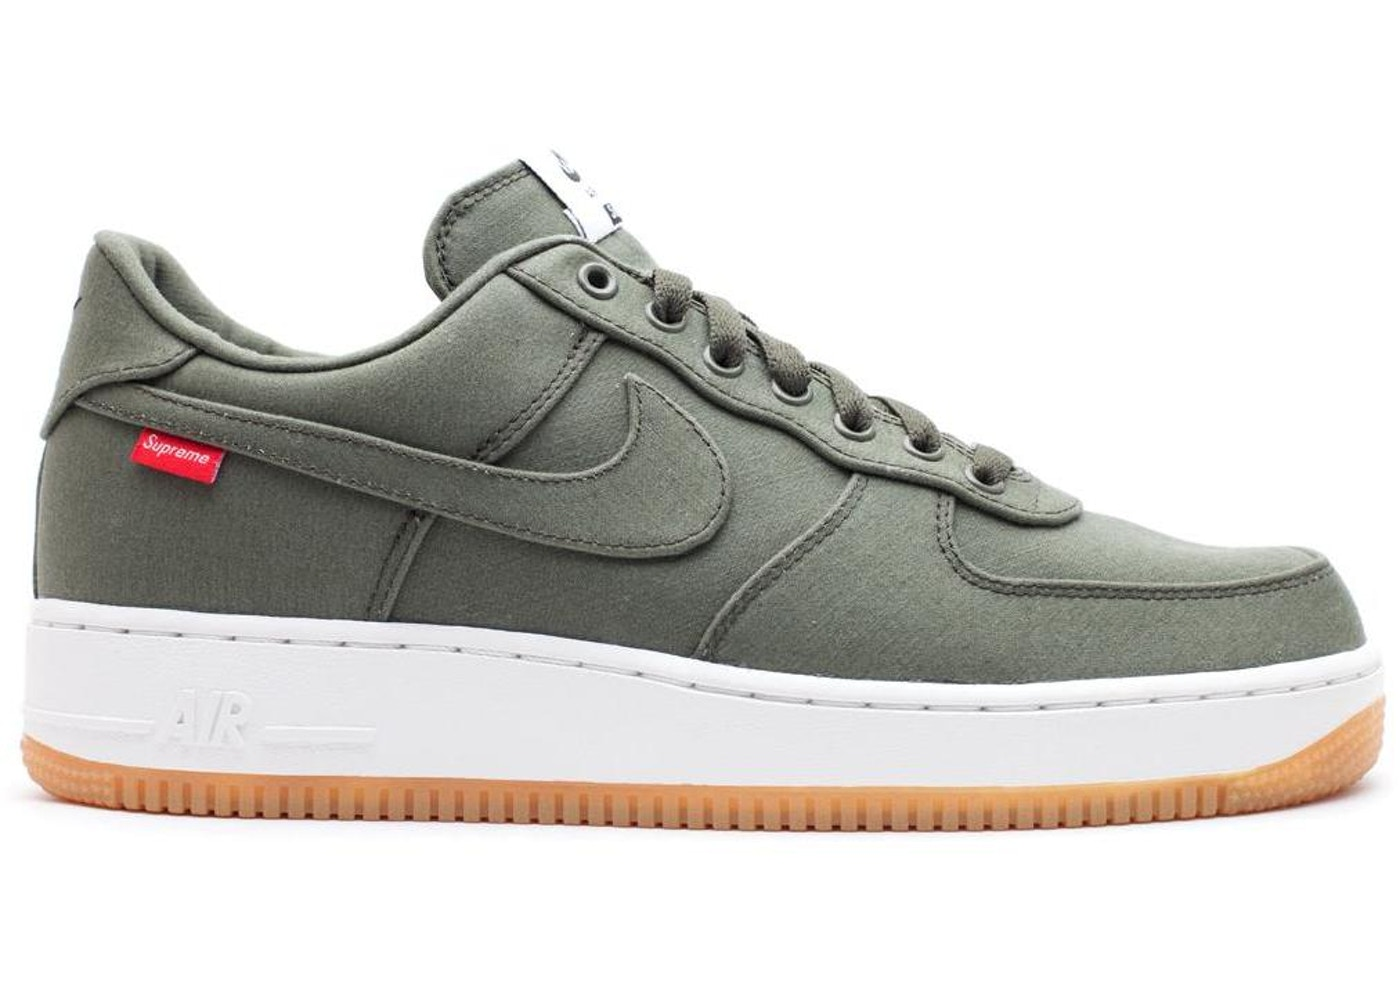 official photos 51086 af705 Air Force 1 Low Supreme Olive - 573488-300